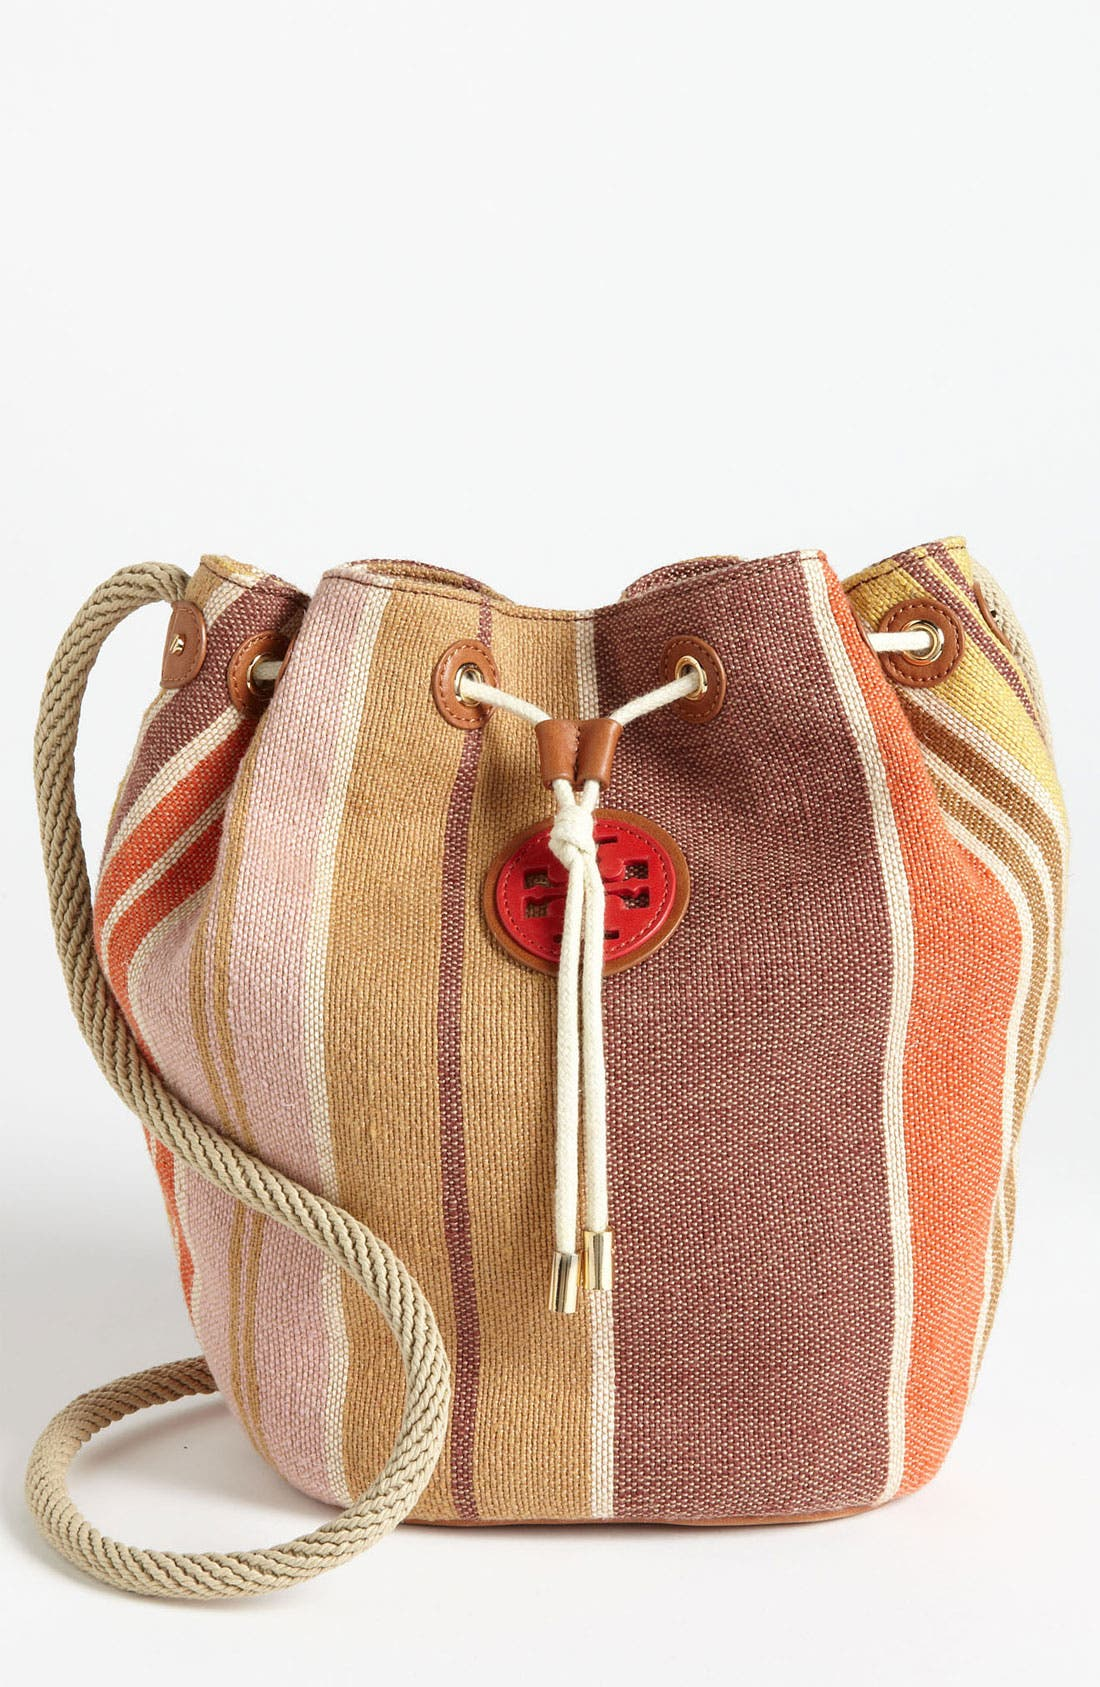 Alternate Image 1 Selected - Tory Burch 'Baja' Drawstring Crossbody Bag